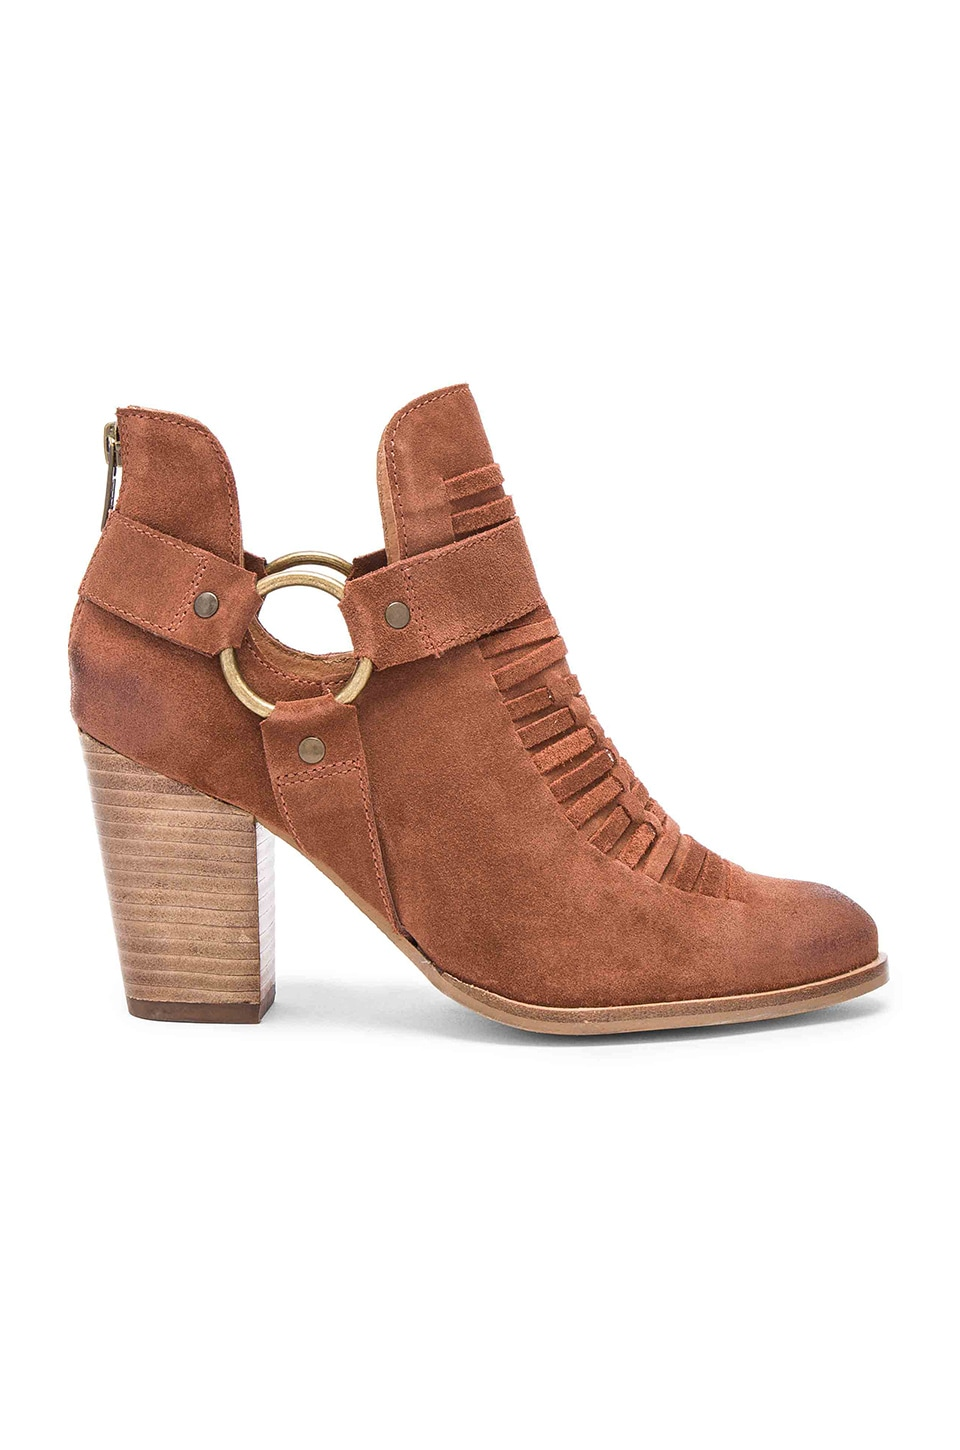 Seychelles Impossible Booties in Cognac Suede